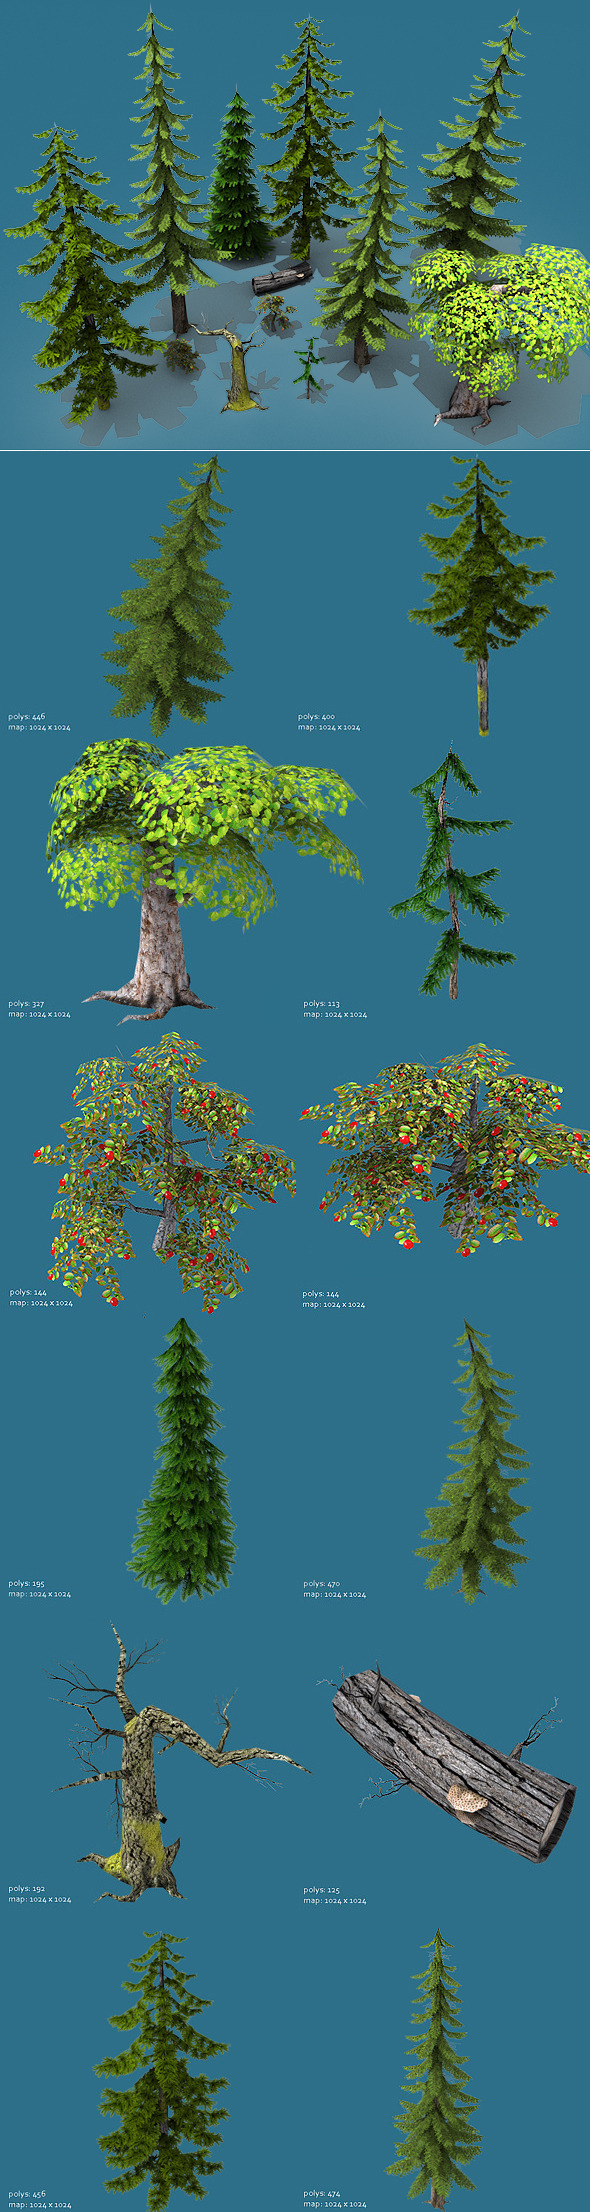 3D Tree Models from 3DOcean